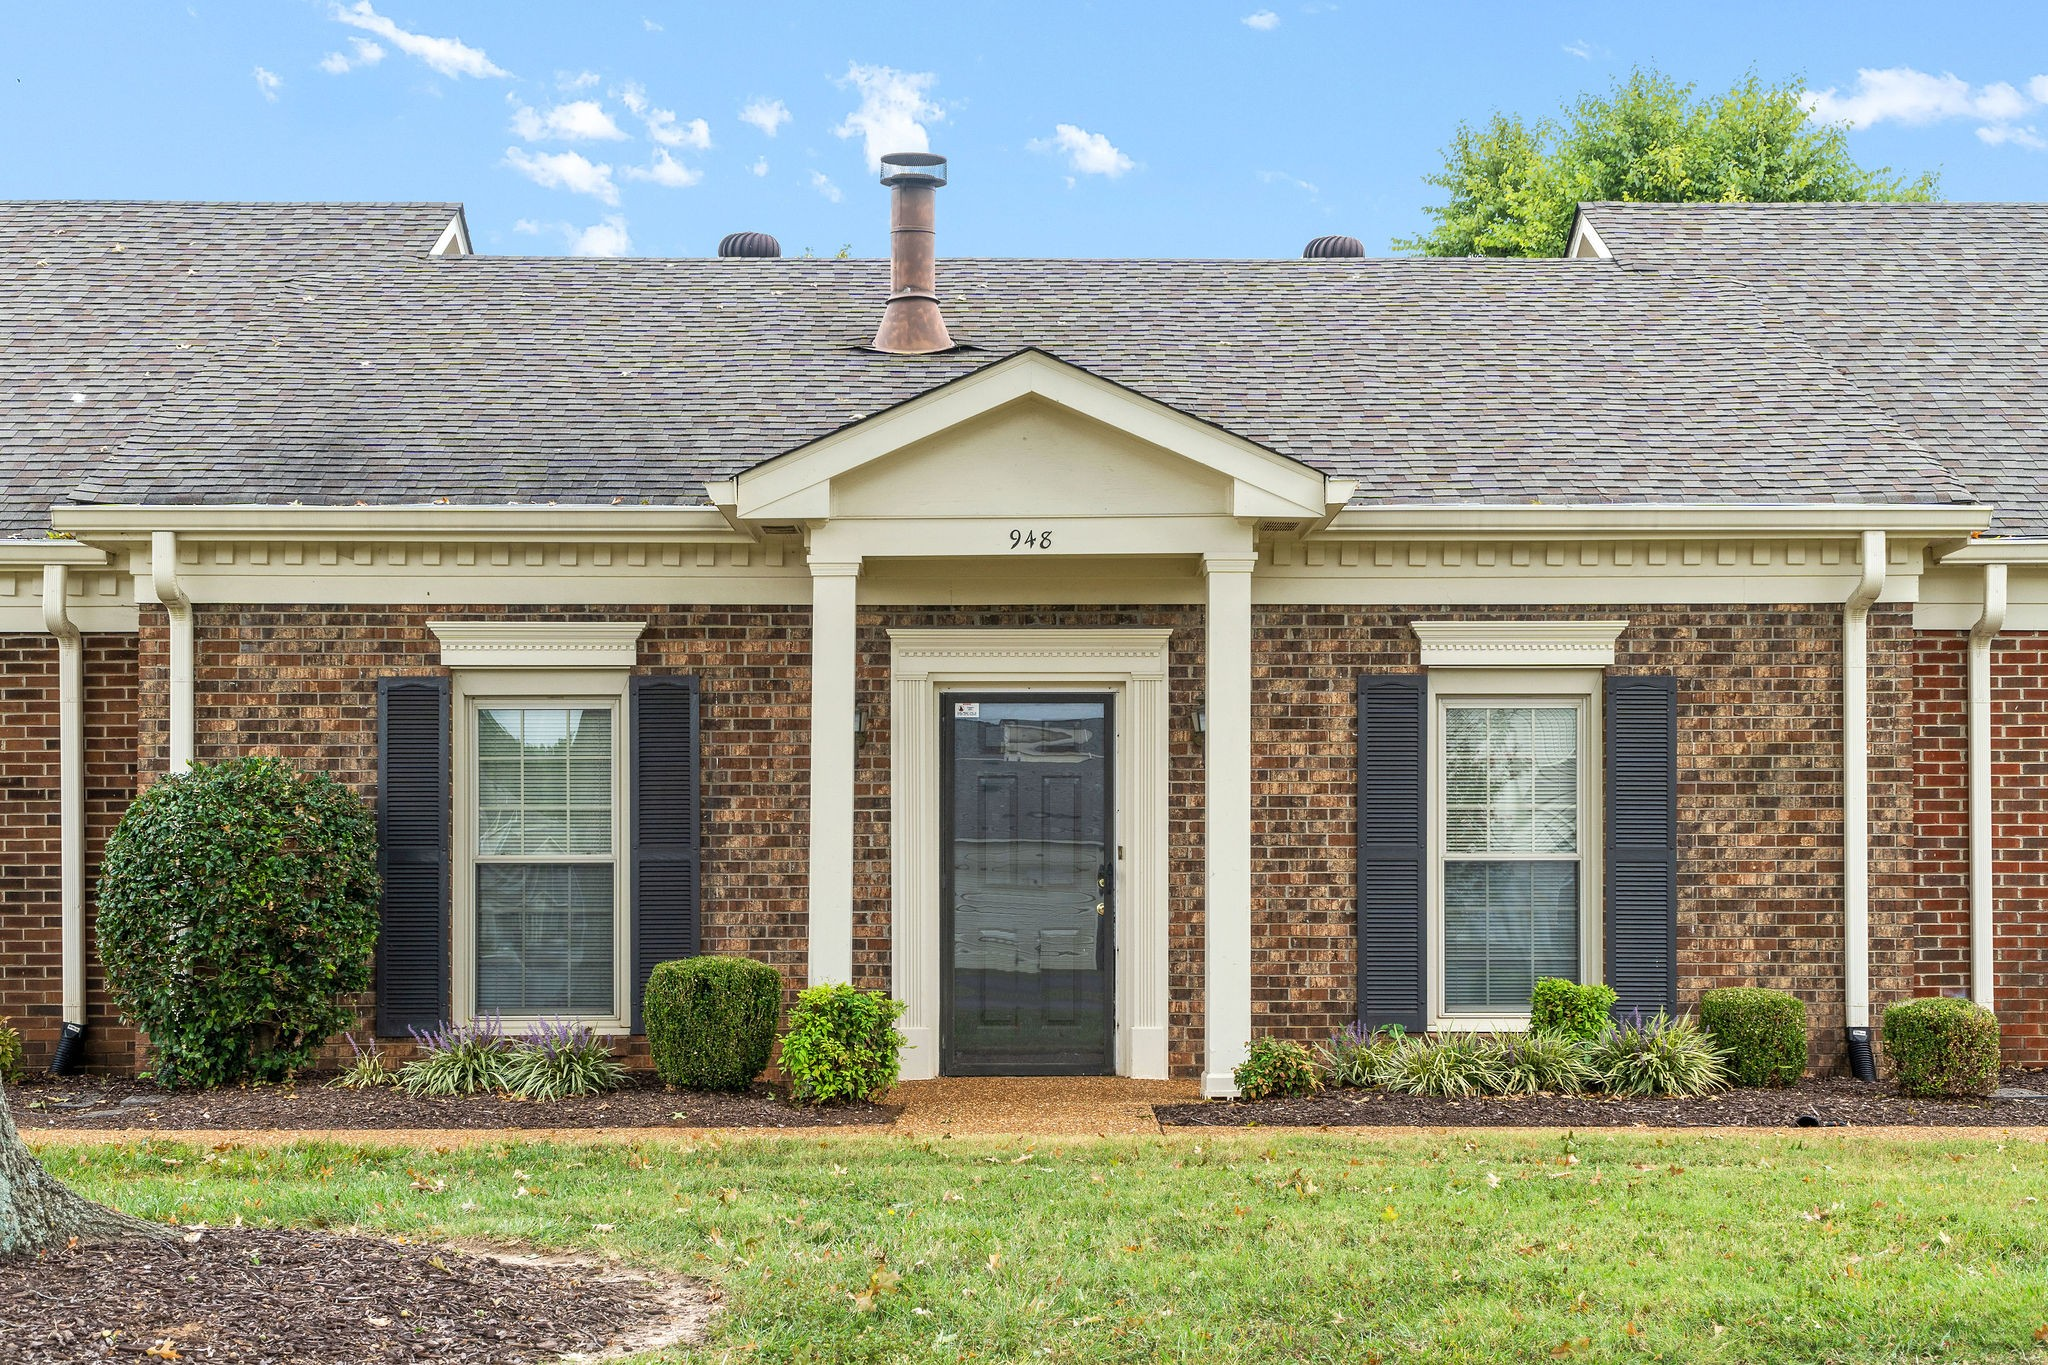 Charming Two Bedroom Town Home In Convenient Location Close To MTSU - Adorable Eat In Kitchen - All Kitchen Appliances Convey - Large Living Room with Wood Burning Fireplace - Community Pool & Tennis Courts, Exterior & Grounds Maintained by HOA - Enjoy The Courtyard And Covered Parking